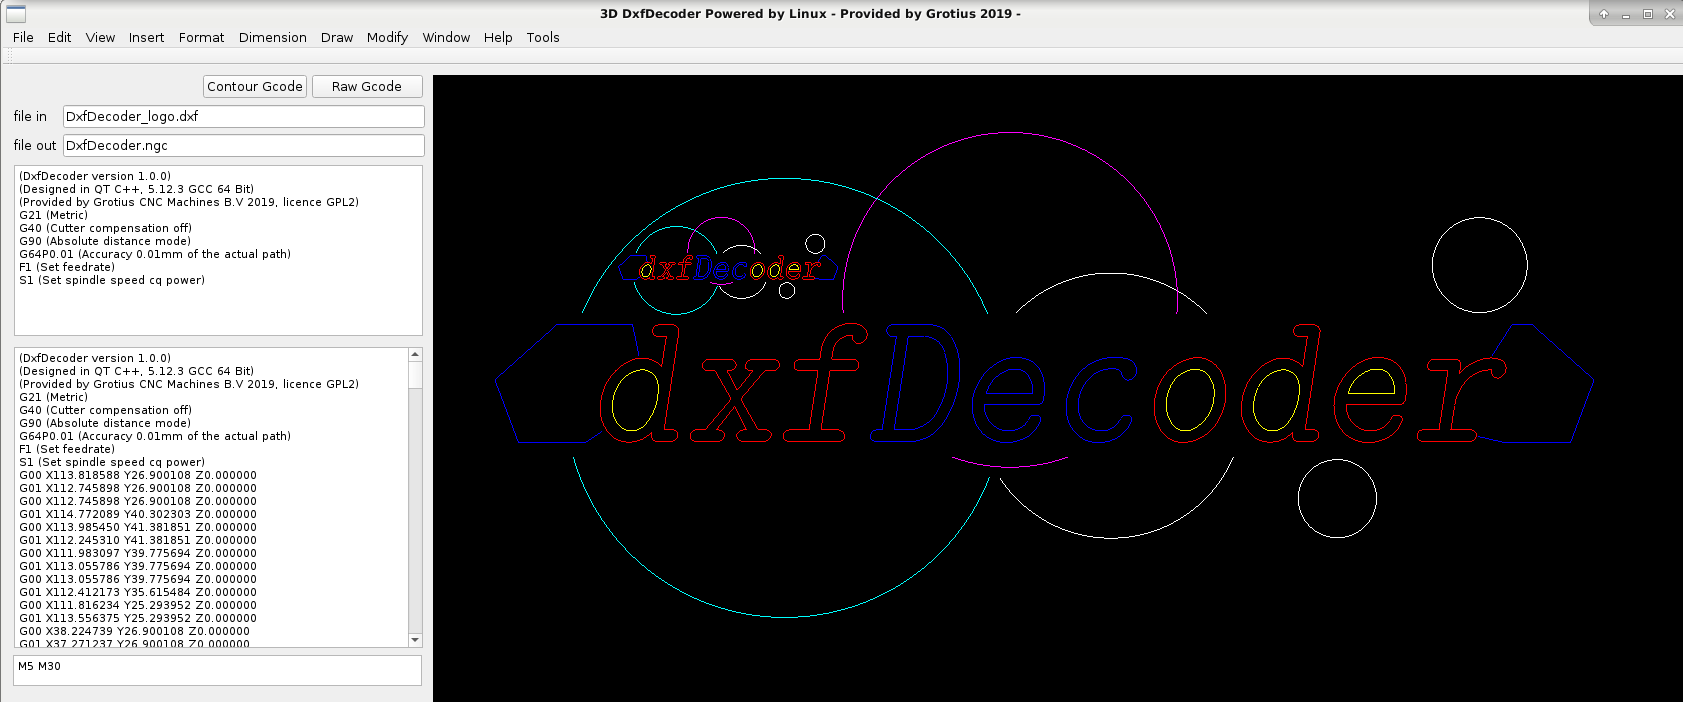 dxfdecoder_gui_2019-07-16.png